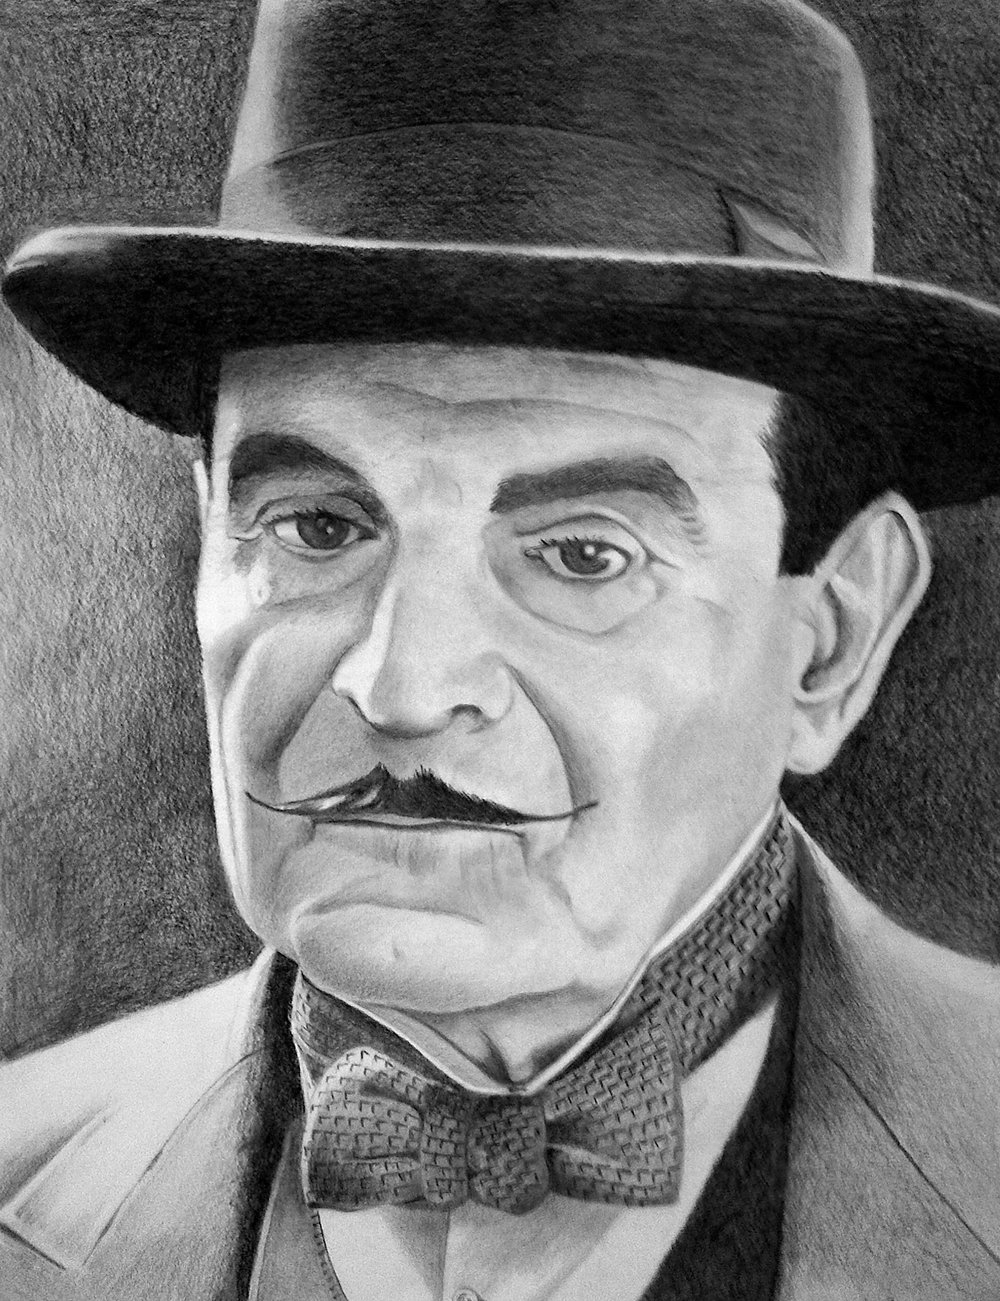 Poirot - played by David Suchet